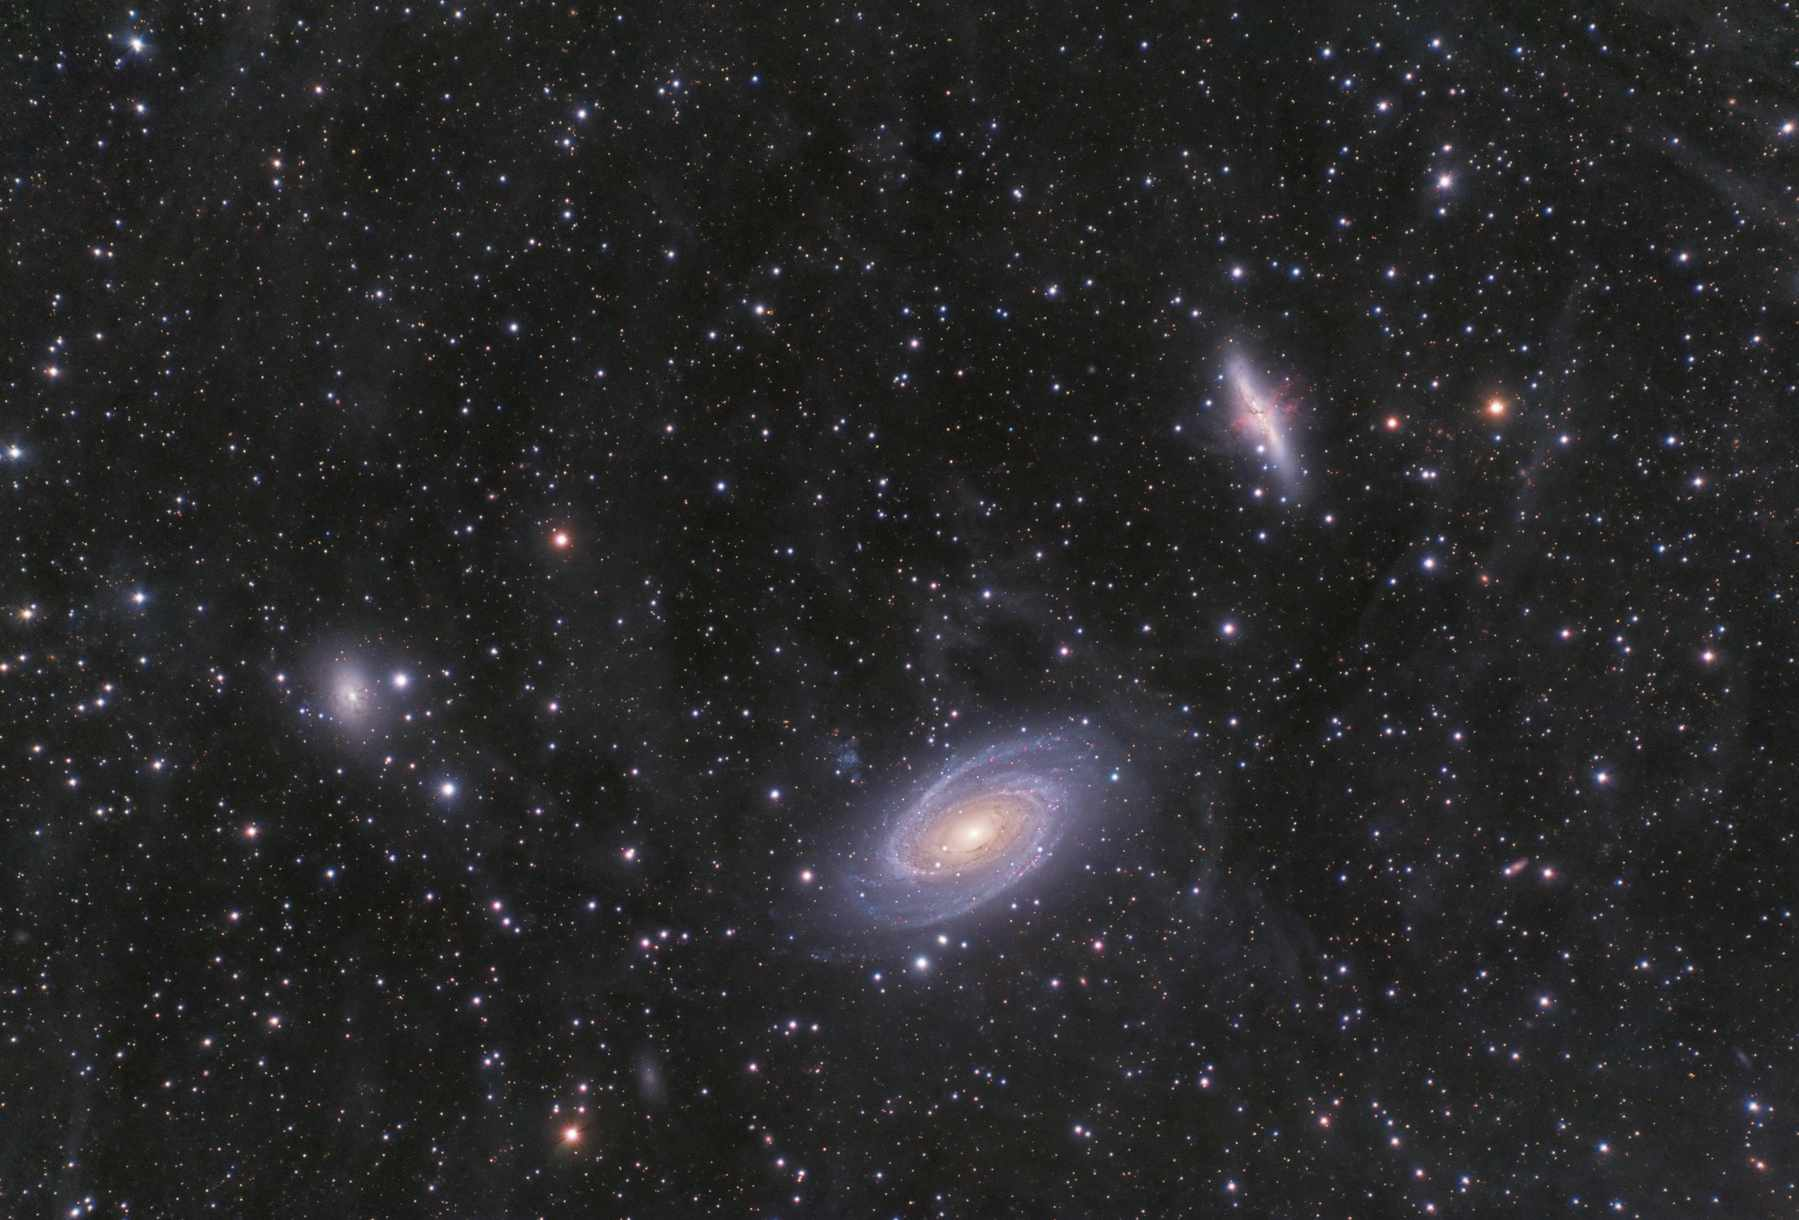 Pictures of Bode's Galaxy and the Cigar Galaxy